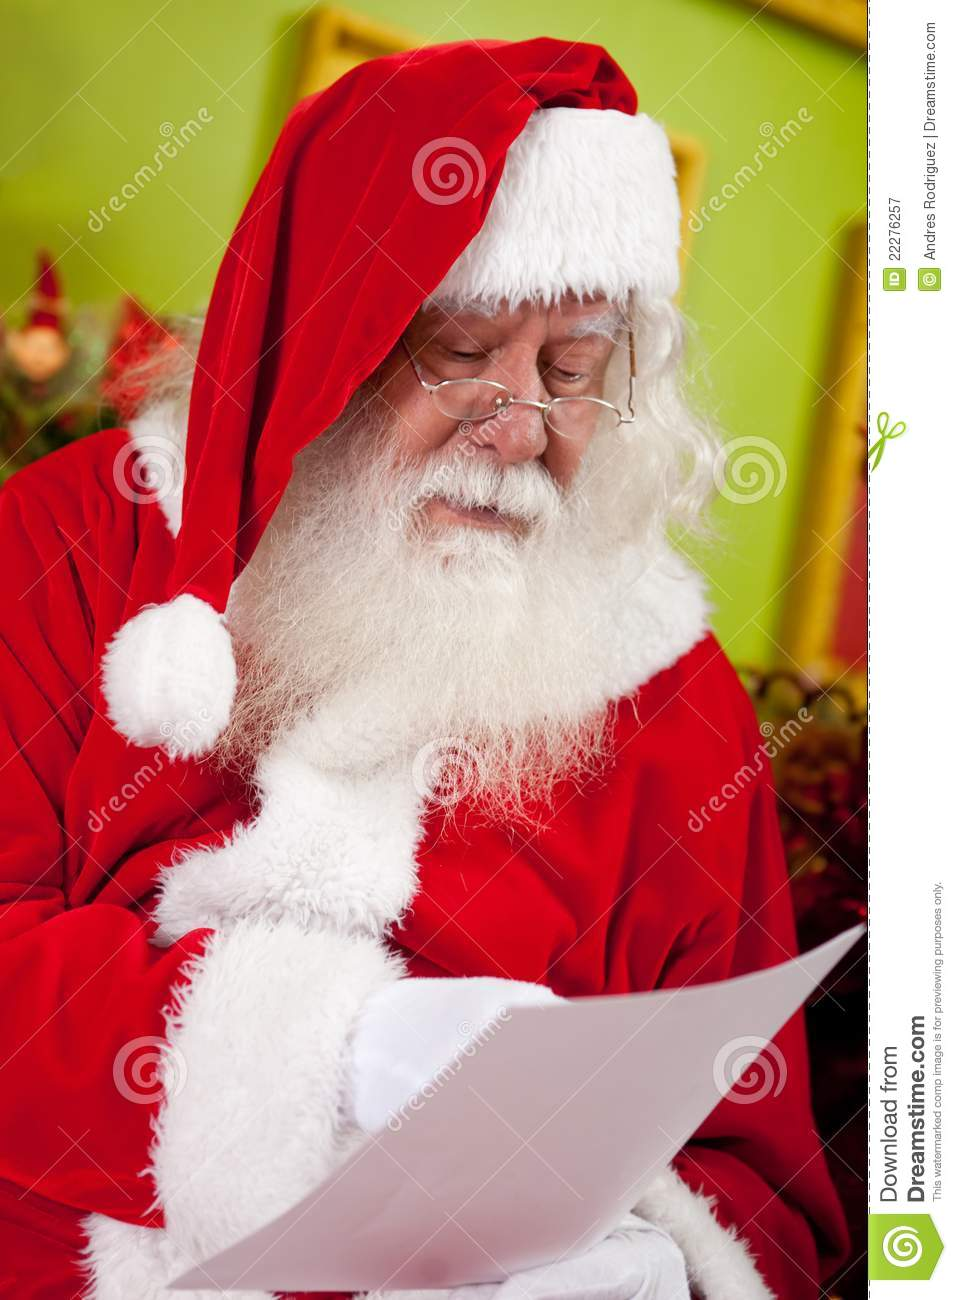 Santa Reading A Christmas Letter Stock Image